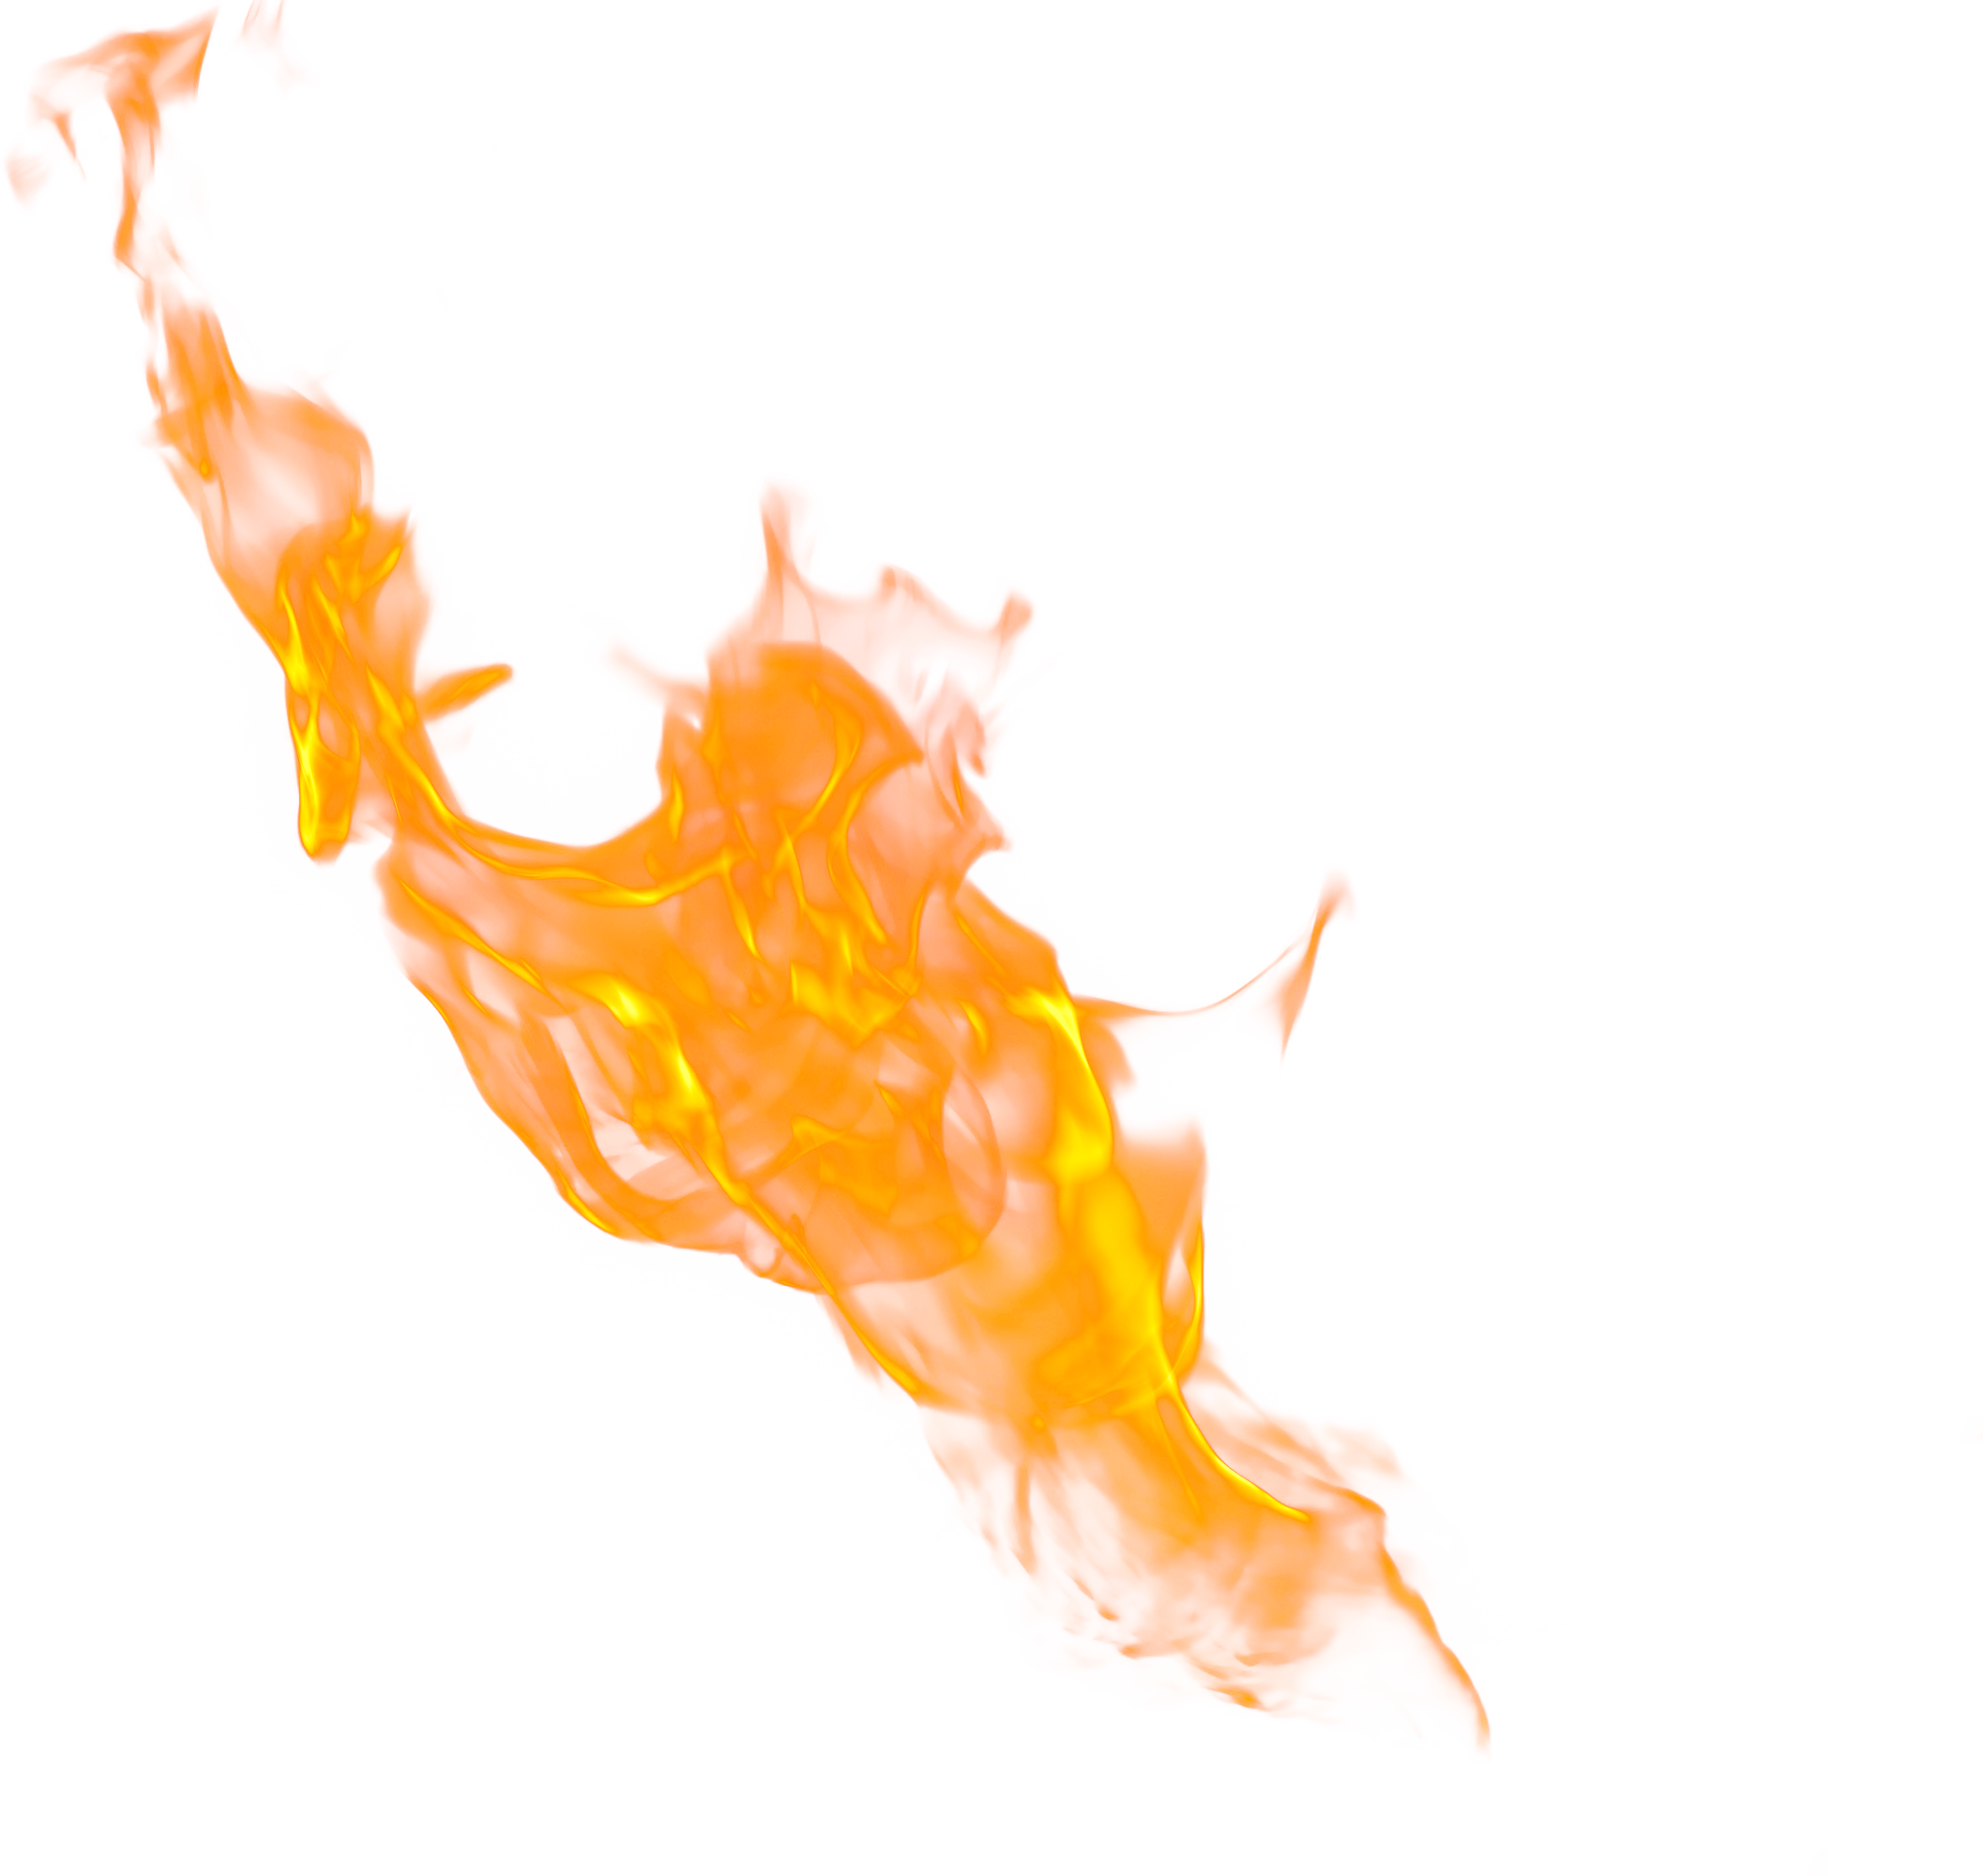 Color Yellow Fire Flame Png Image Purepng Free Transparent Cc0 Png